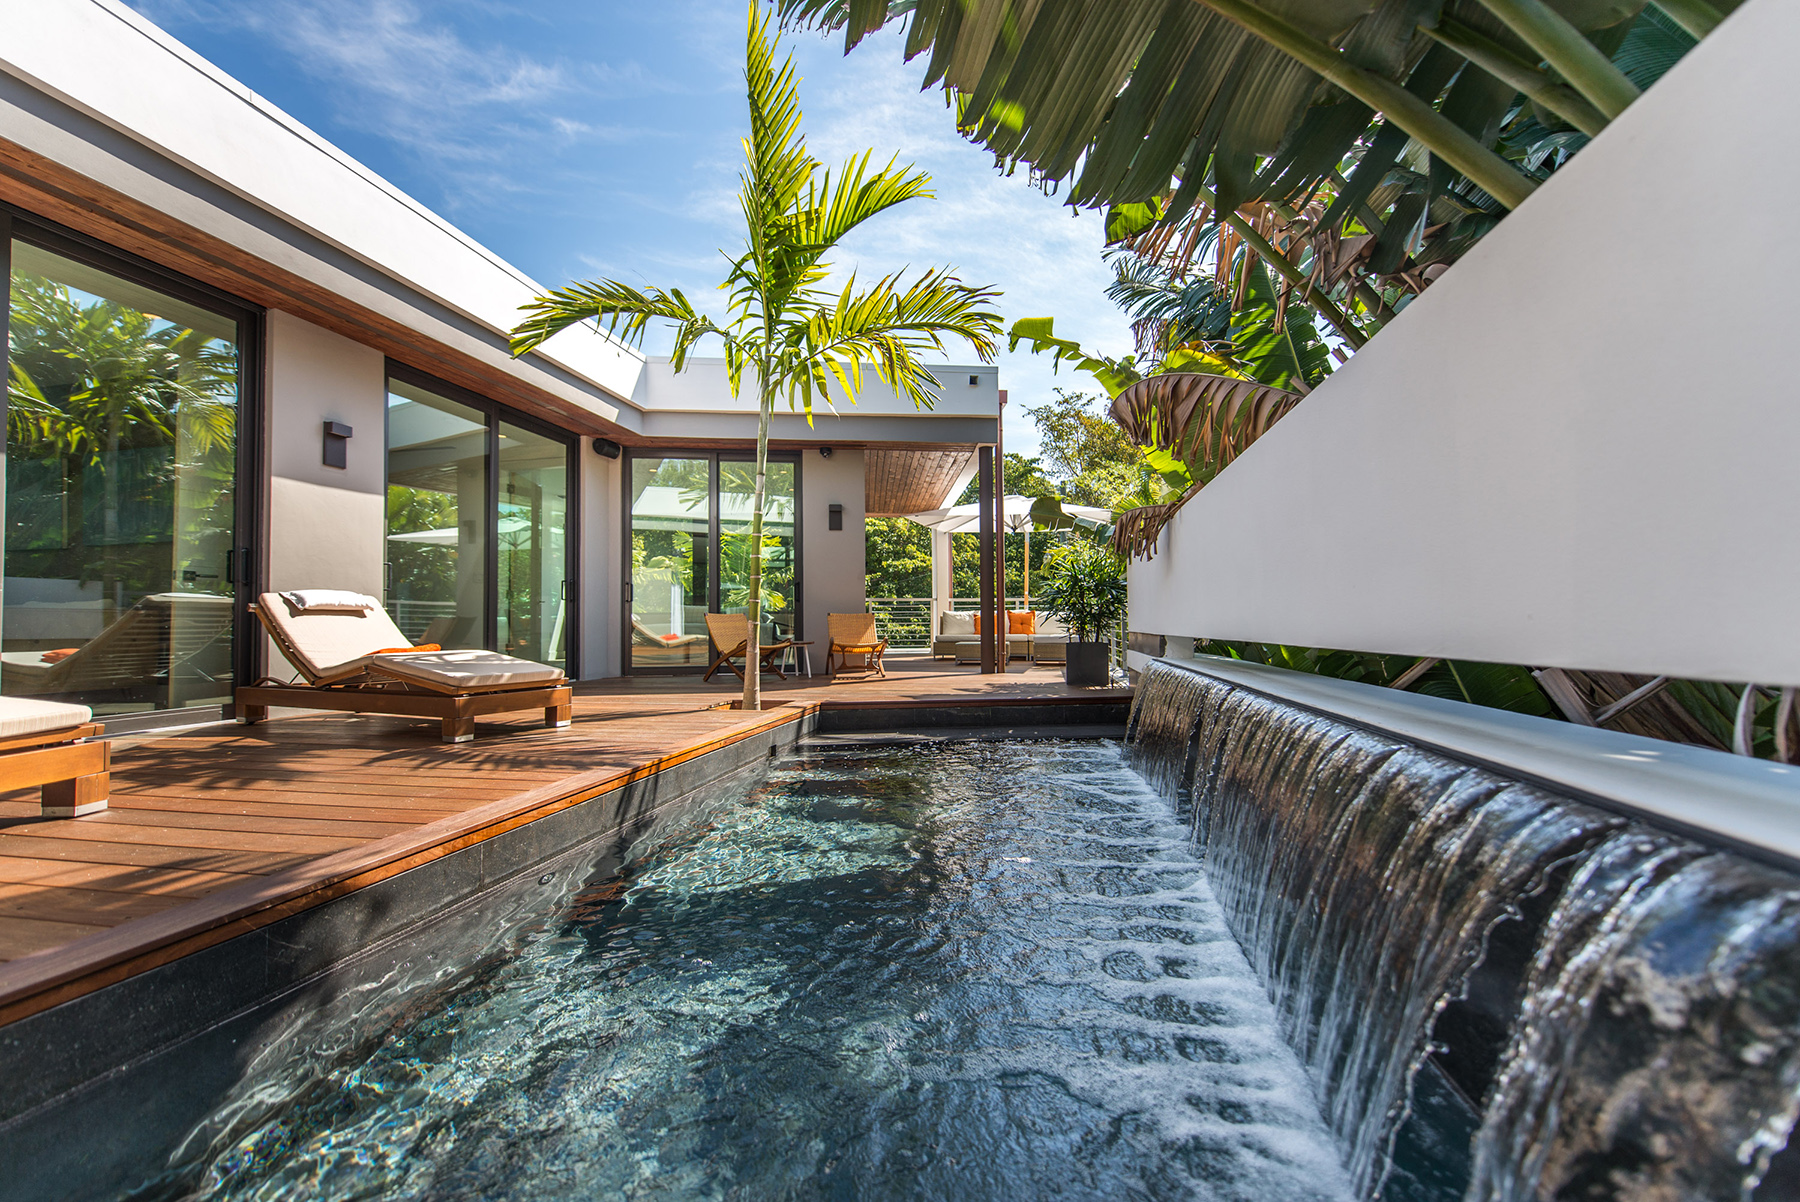 The 'Zen Treehouse' in Coconut Grove for $3M